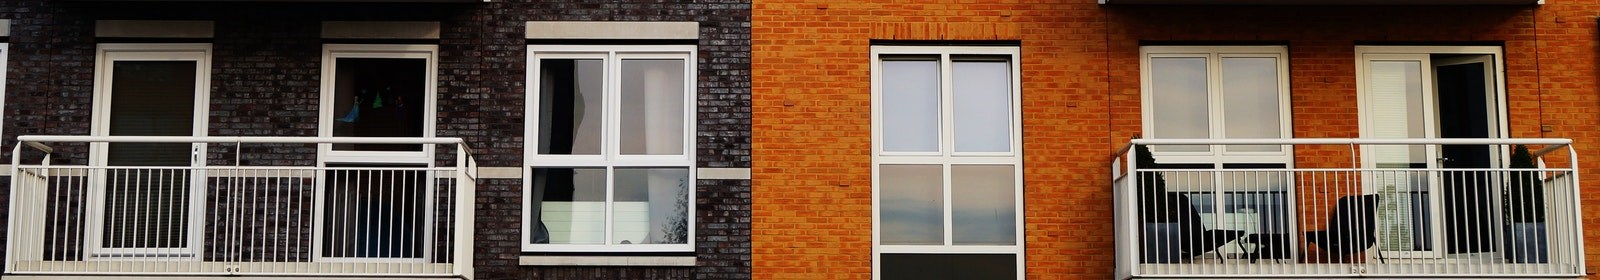 The POPI Act and privacy in community housing schemes